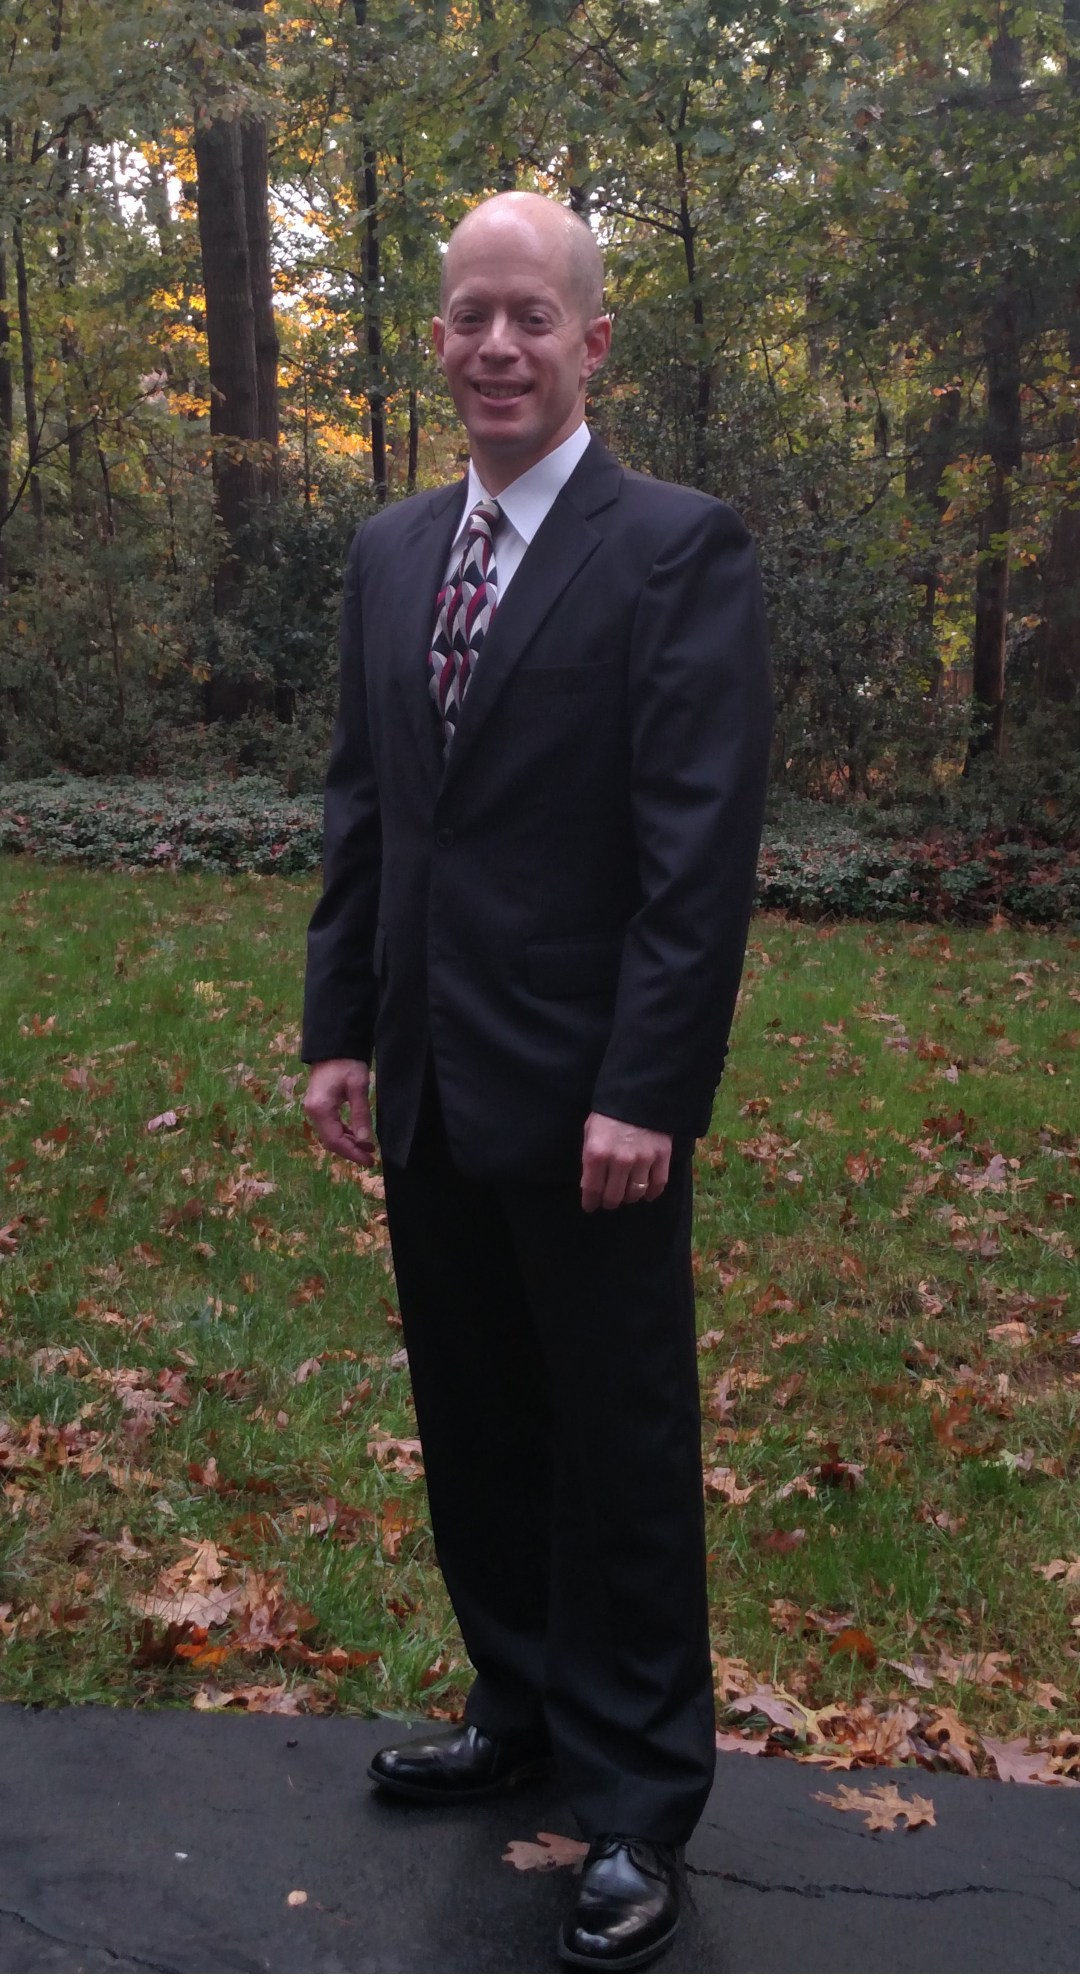 Josh wearing a custom-made suit and shirt